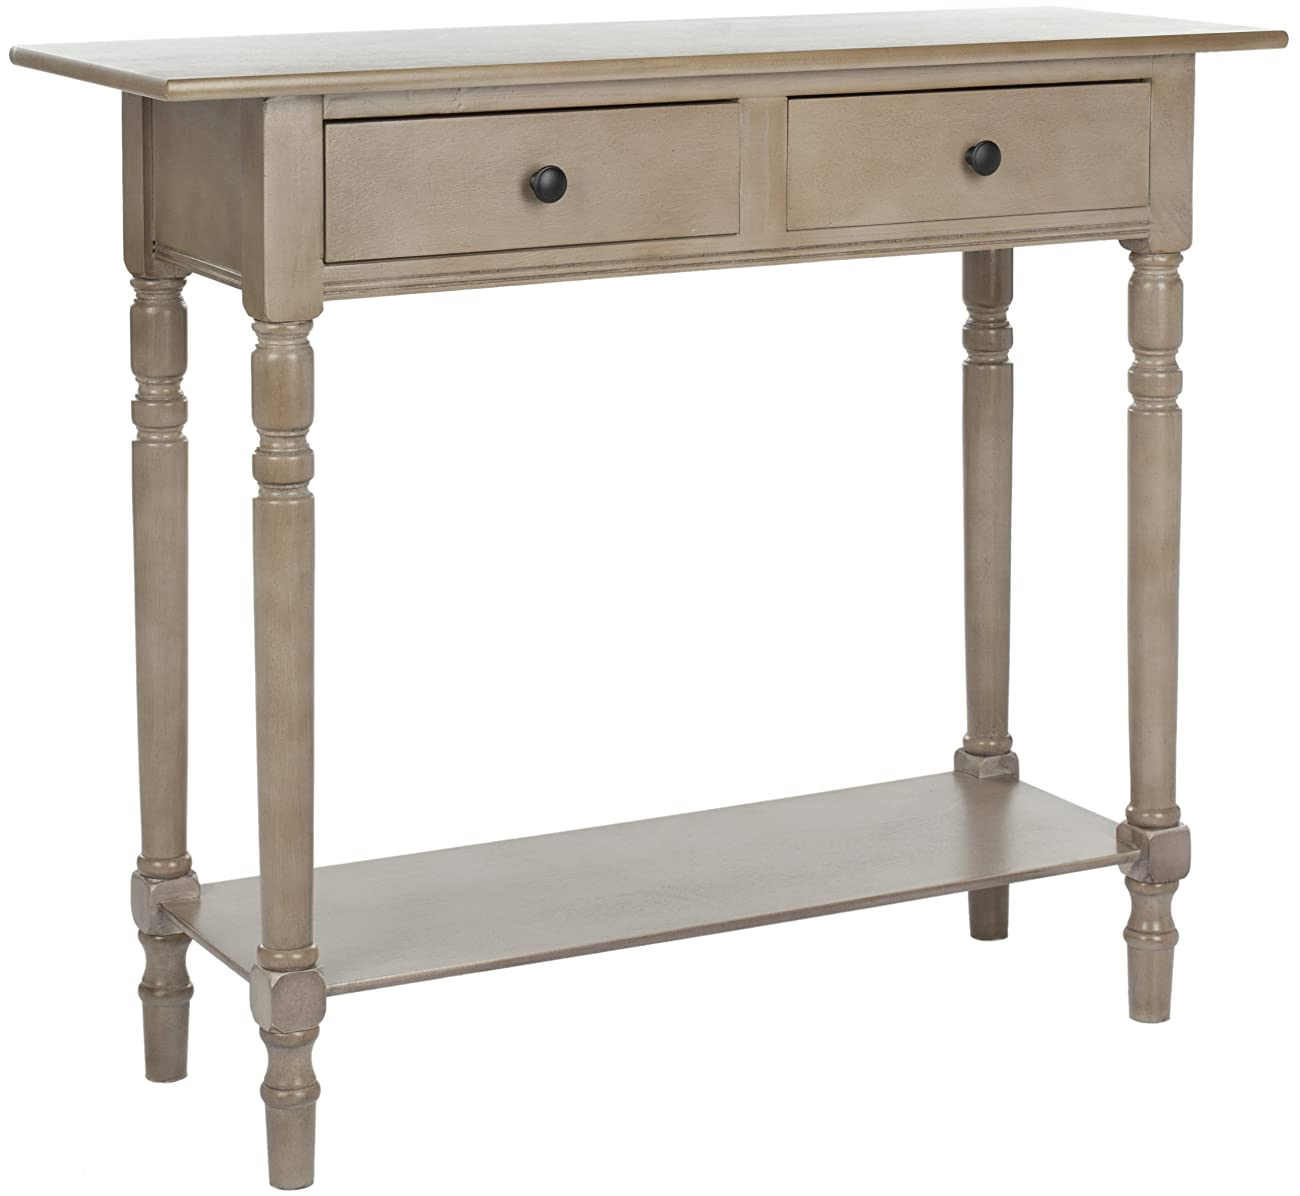 Safavieh American Home Collection Dover Console Table, Vintage Grey 2